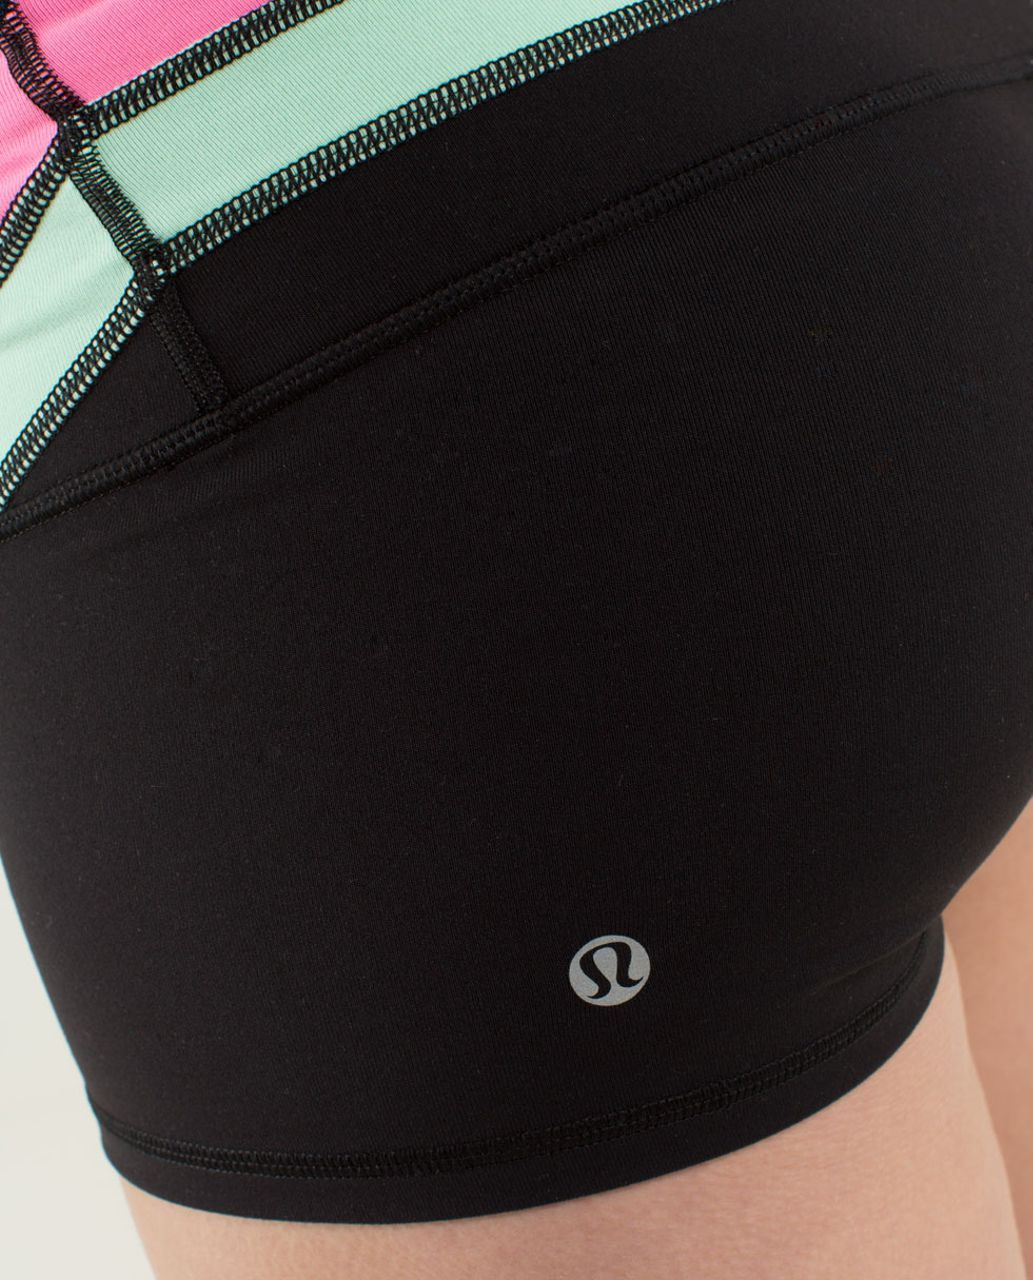 Lululemon Boogie Short *Full-On Luon - Black / Quilt Winter 13-16